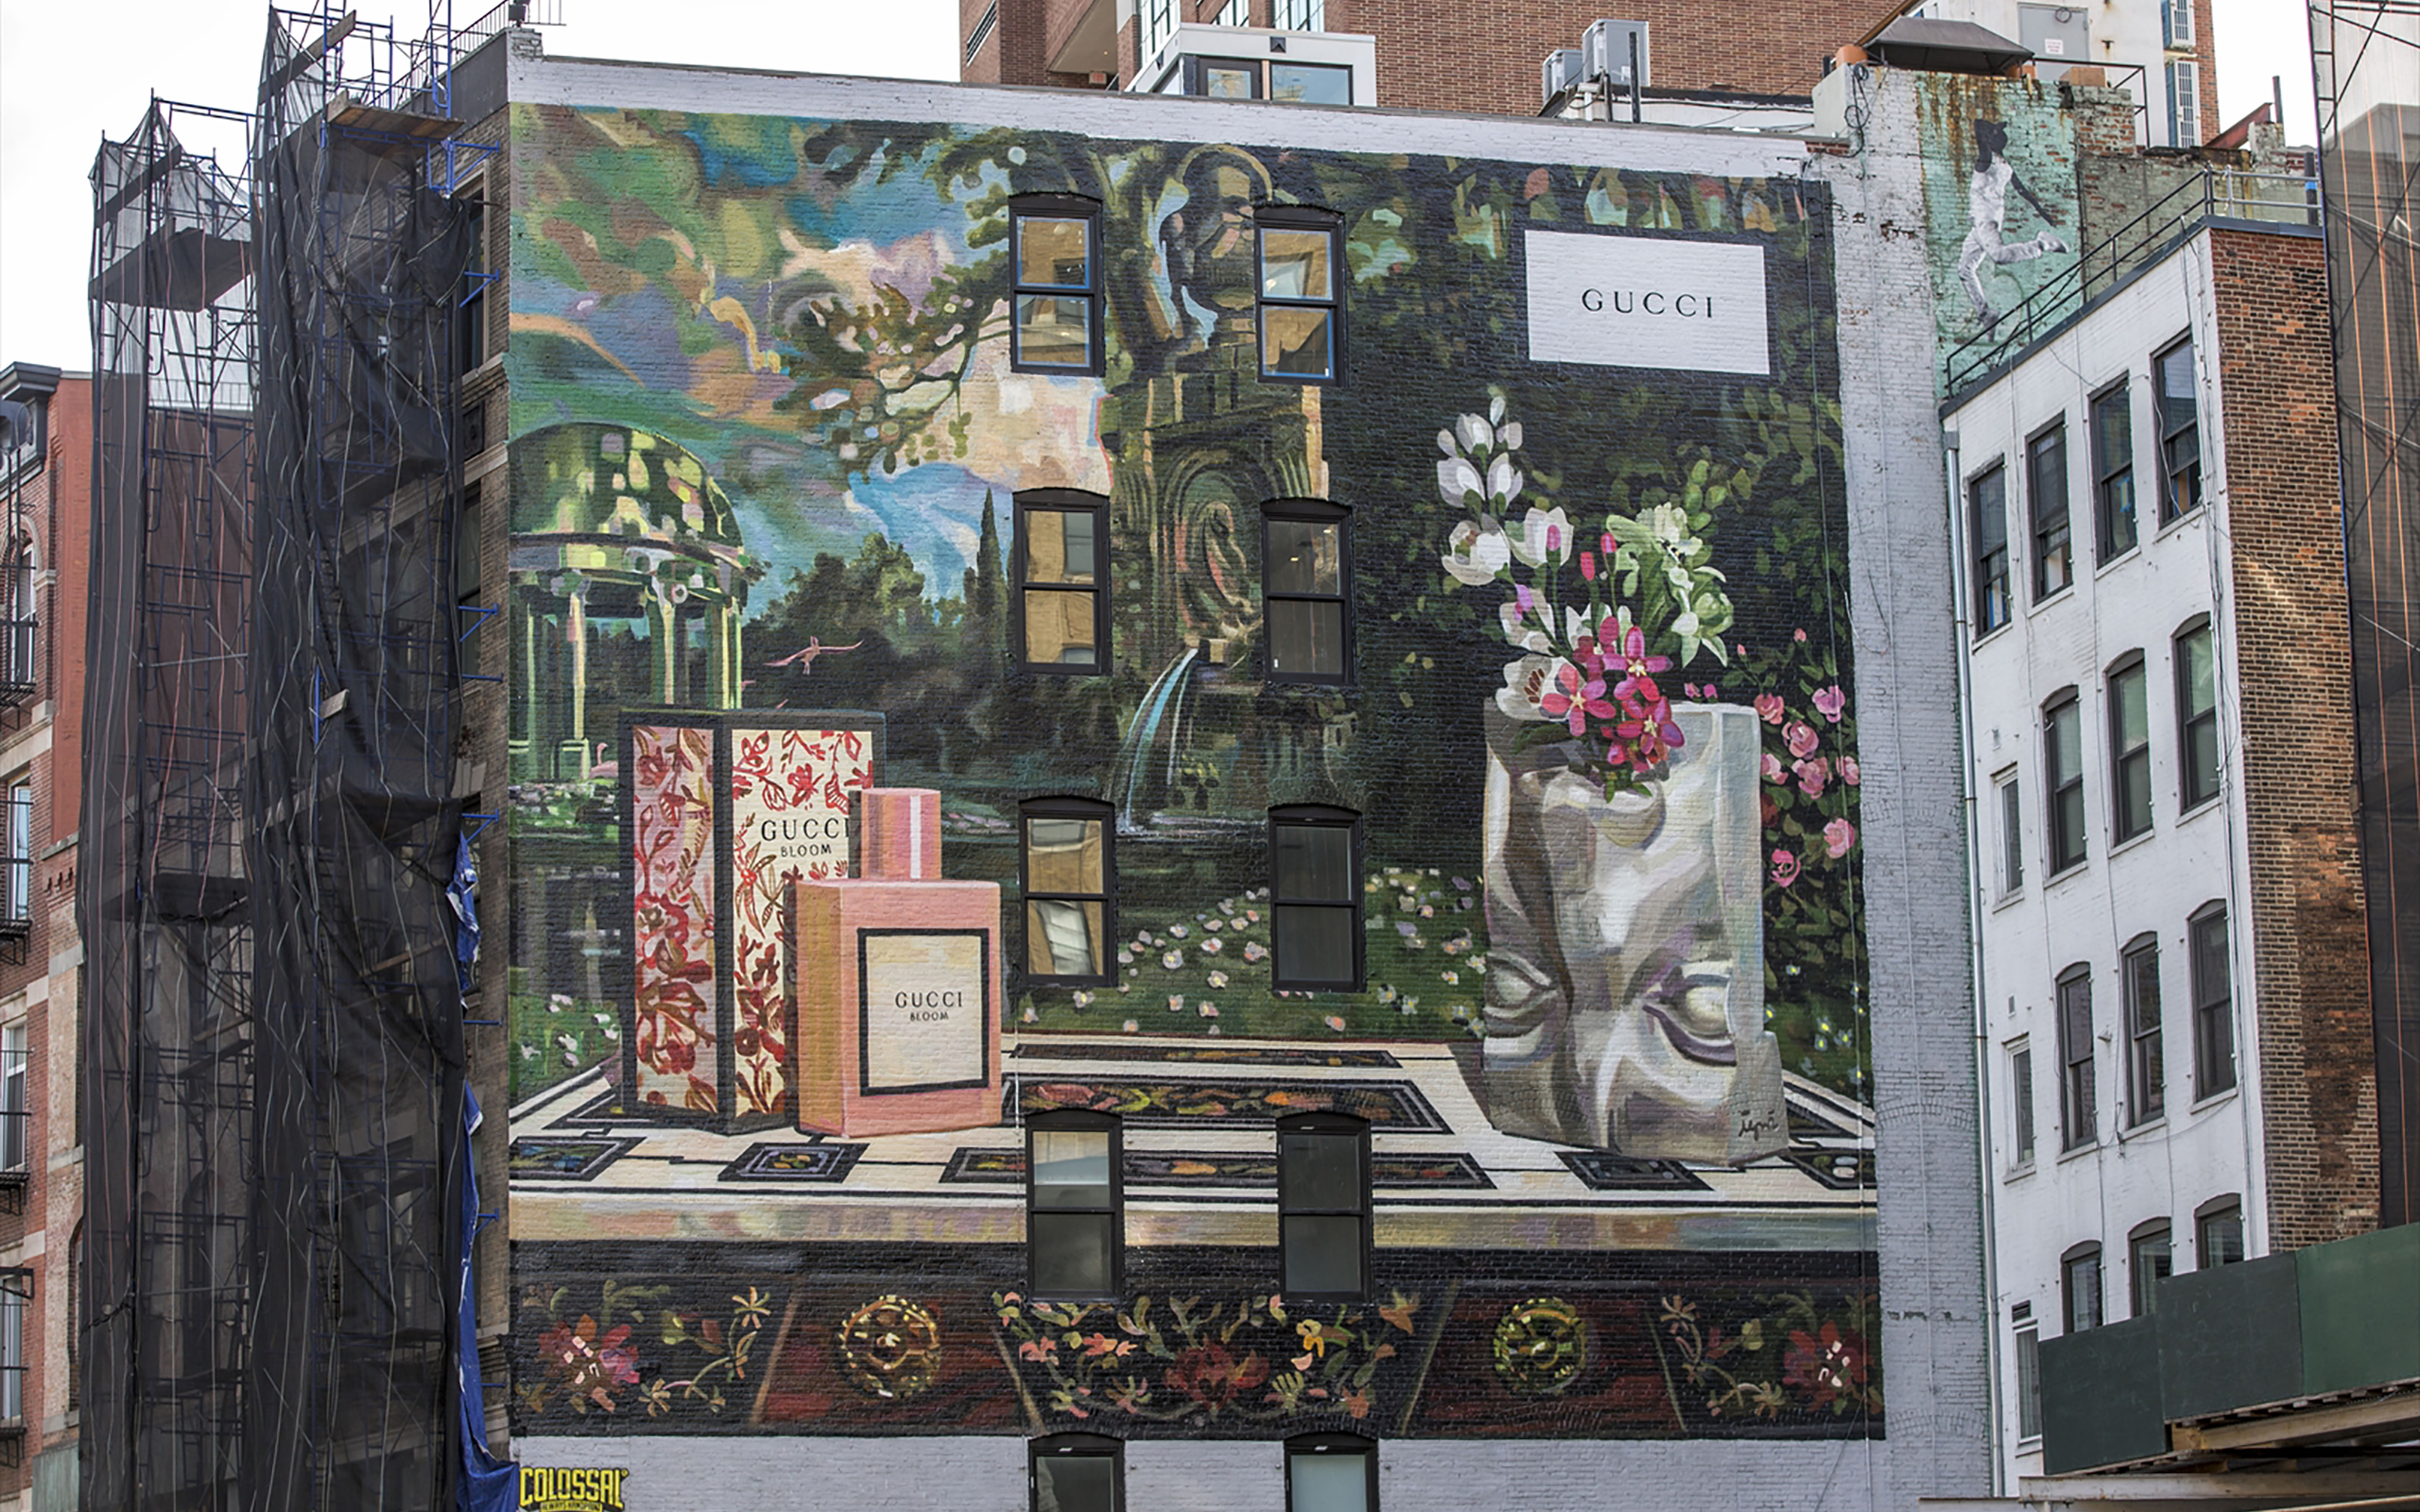 Gucci Launched New Art Wall Project 'Gucci Bloom'